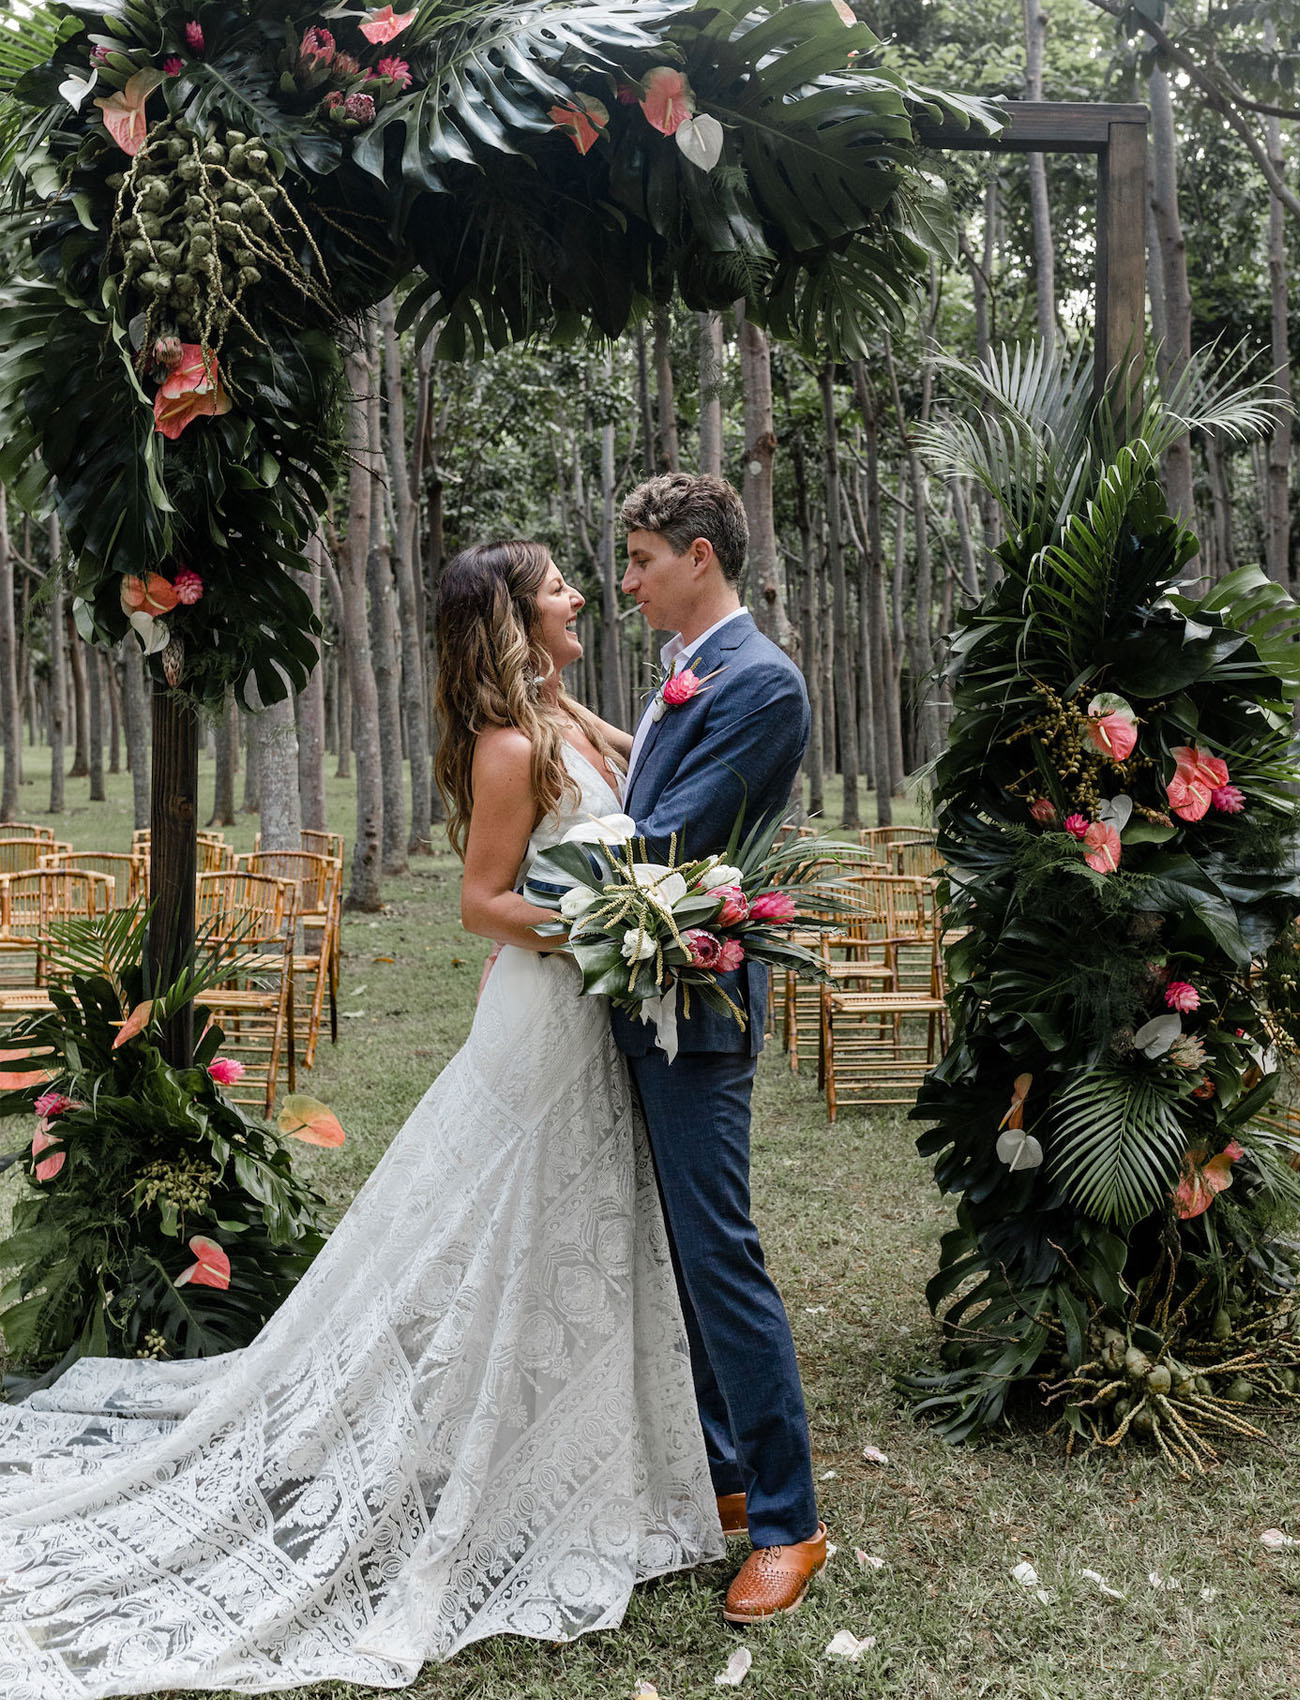 The wedding arch was done with tropical leaves and tropical pink blooms